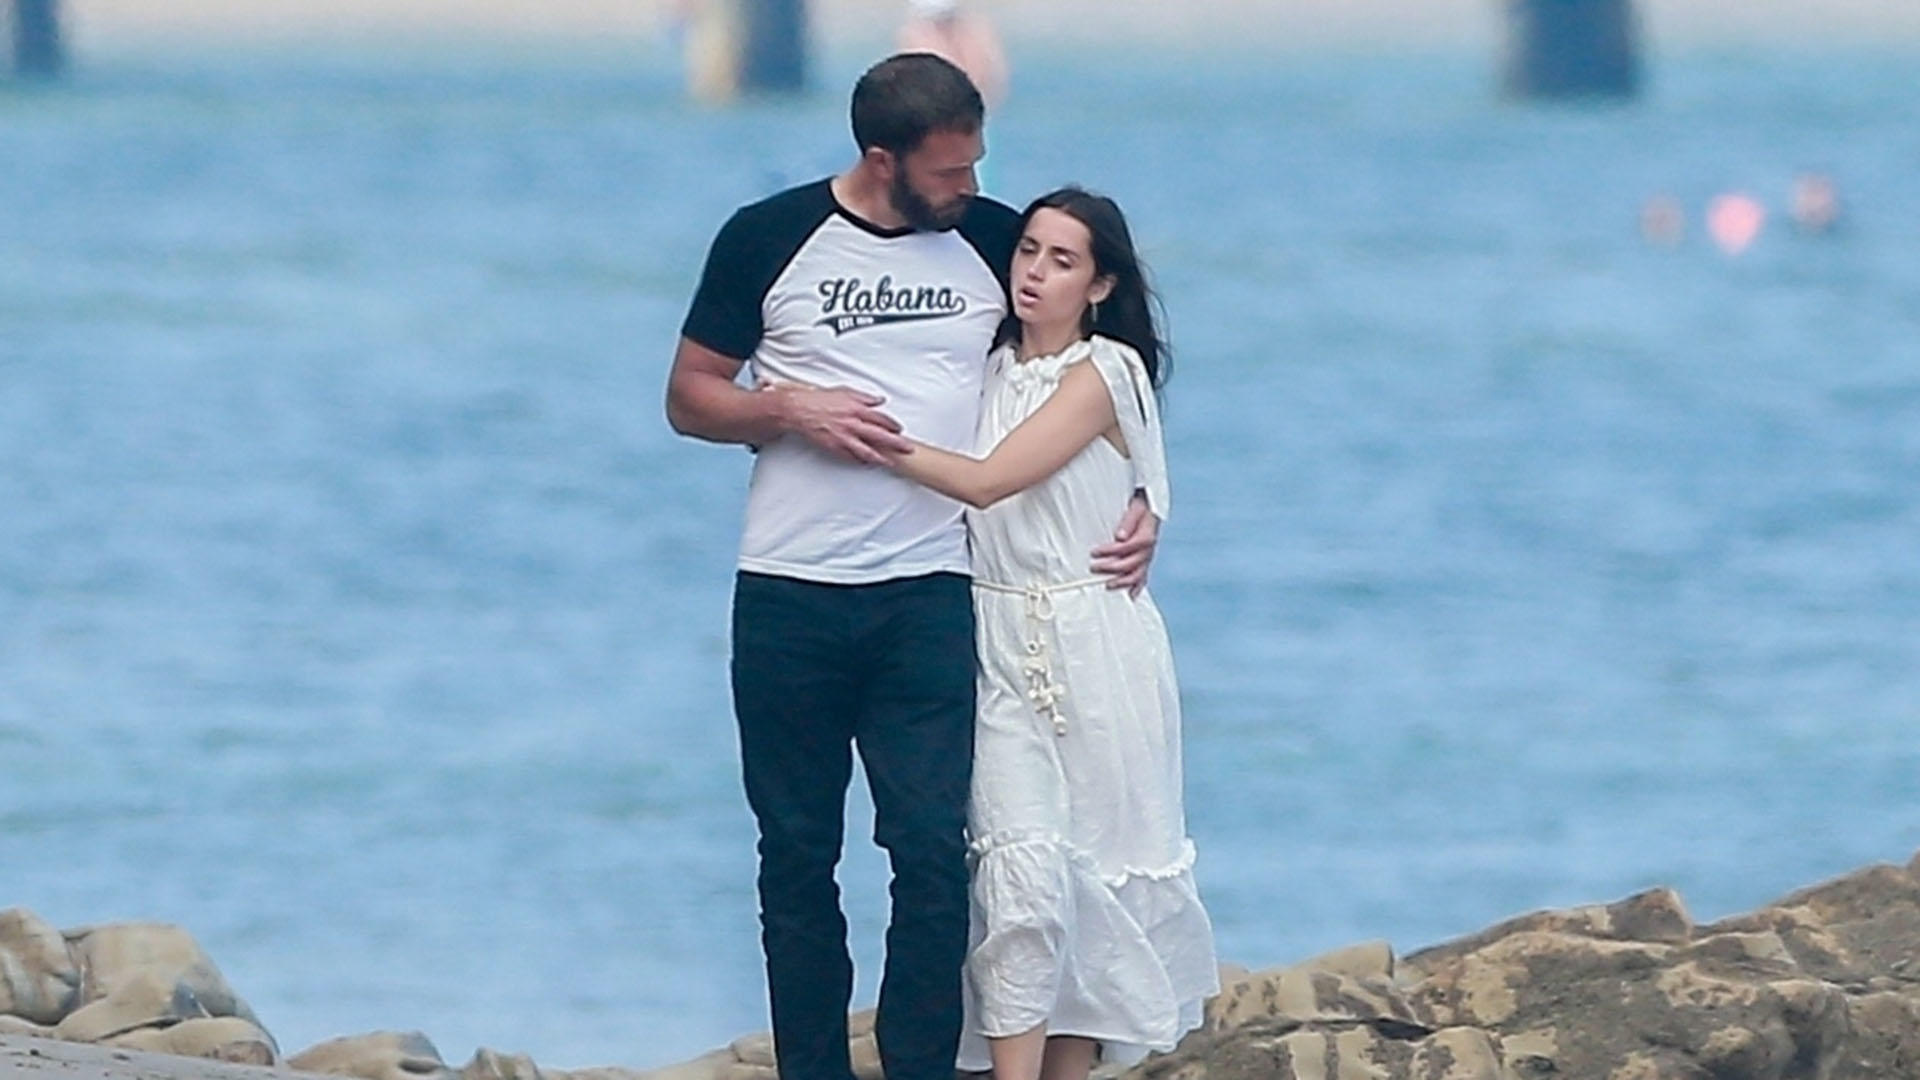 Photo © 2020 Backgrid/The Grosby Group Spain: Lagencia Grosby  Malibu, CA  - *EXCLUSIVE* - Ben Affleck and Ana De Armas look more in love than ever spending time at the beach in Malibu with Ben's BFF Matt Damon and his wife Luciana. Ana and Ben could not keep their hands to themselves and took some private time to stroll along the beach.  Pictured: Ben Affleck and Ana De Armas   AUGUST 2020